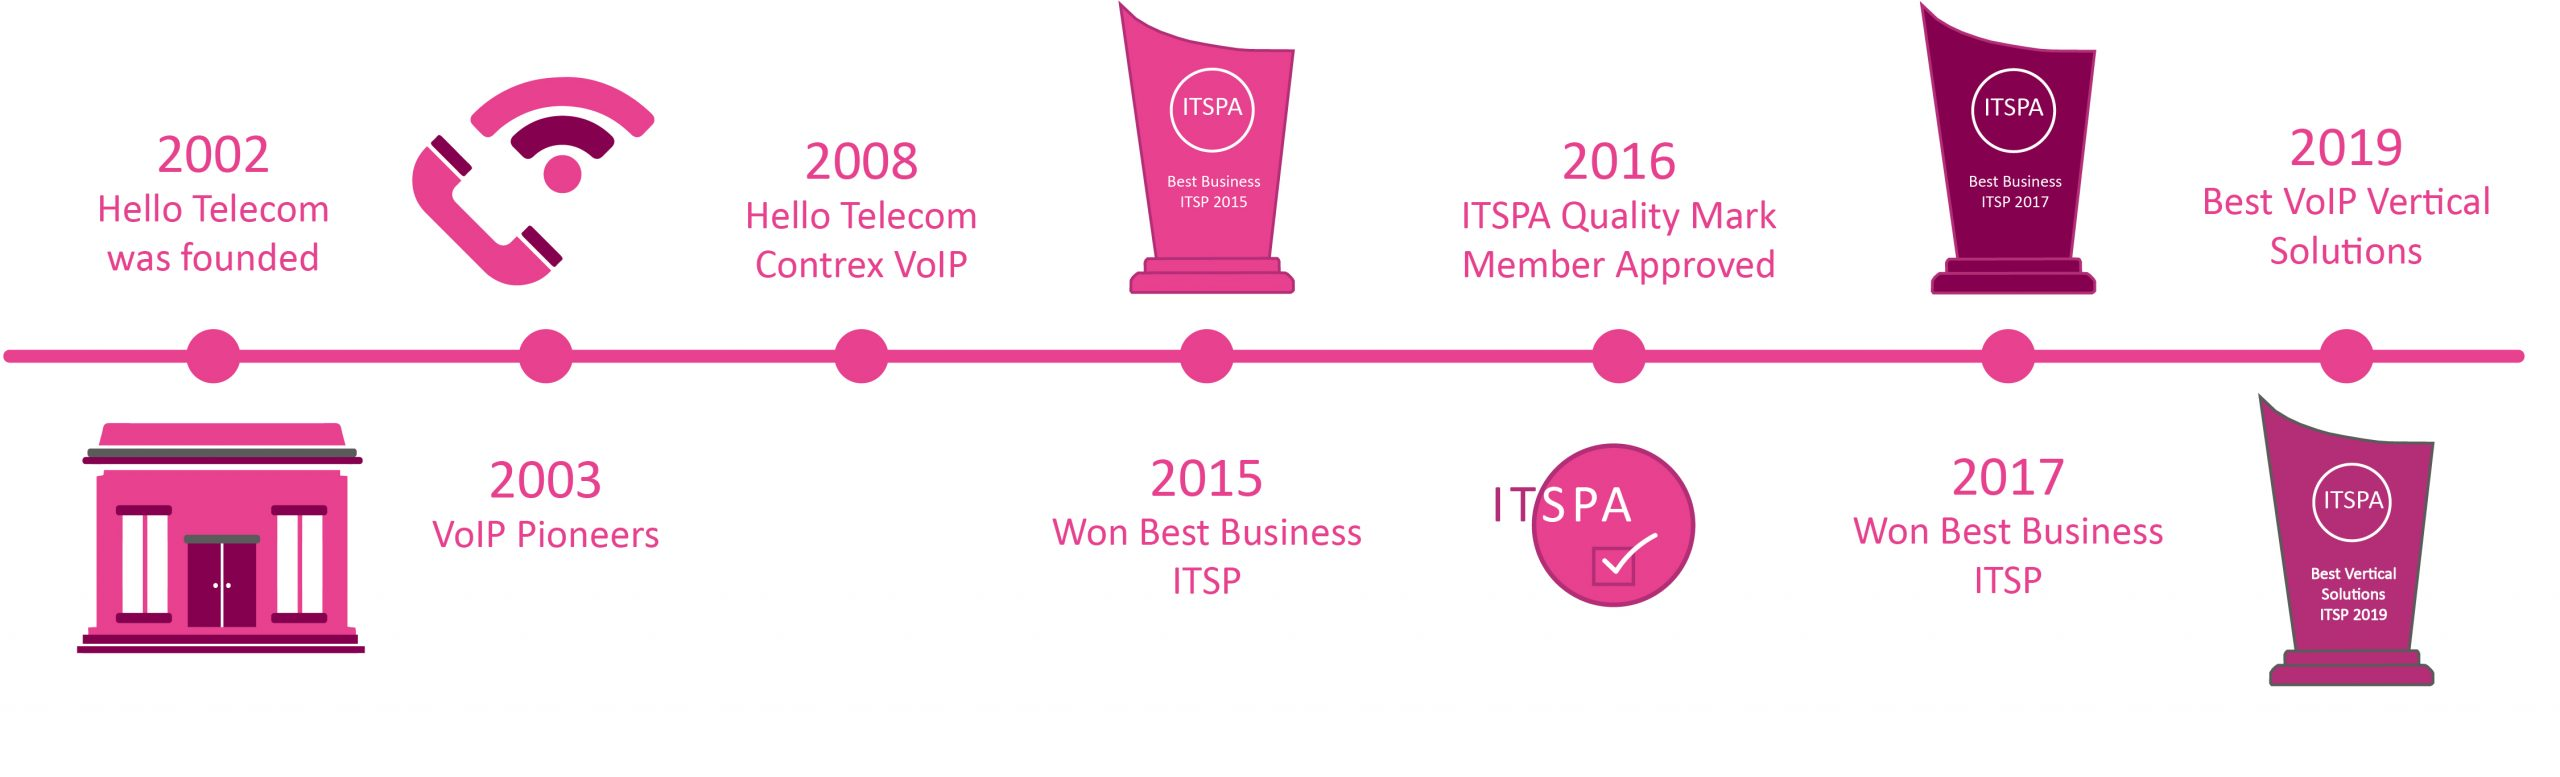 Our VoIP Company Page Hello Telecom VoIP Timeline